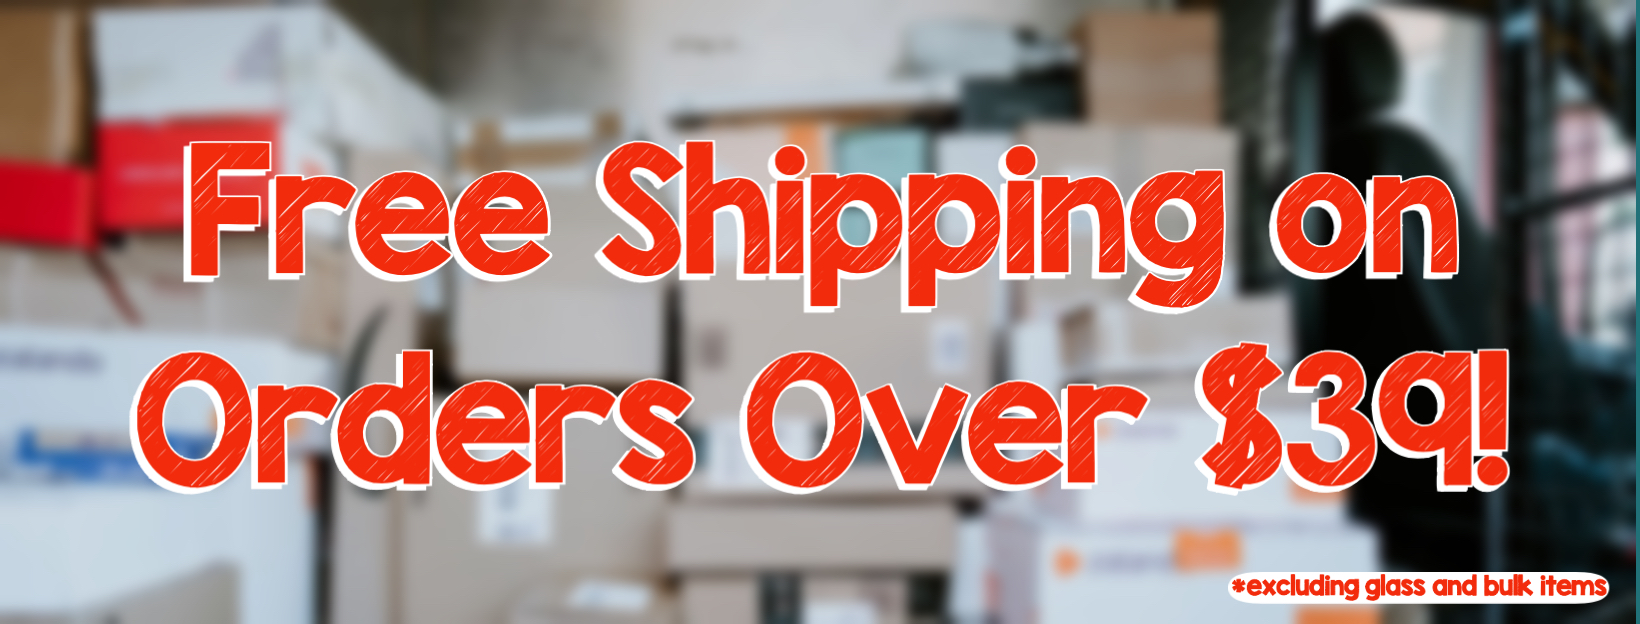 Free shipping over $39